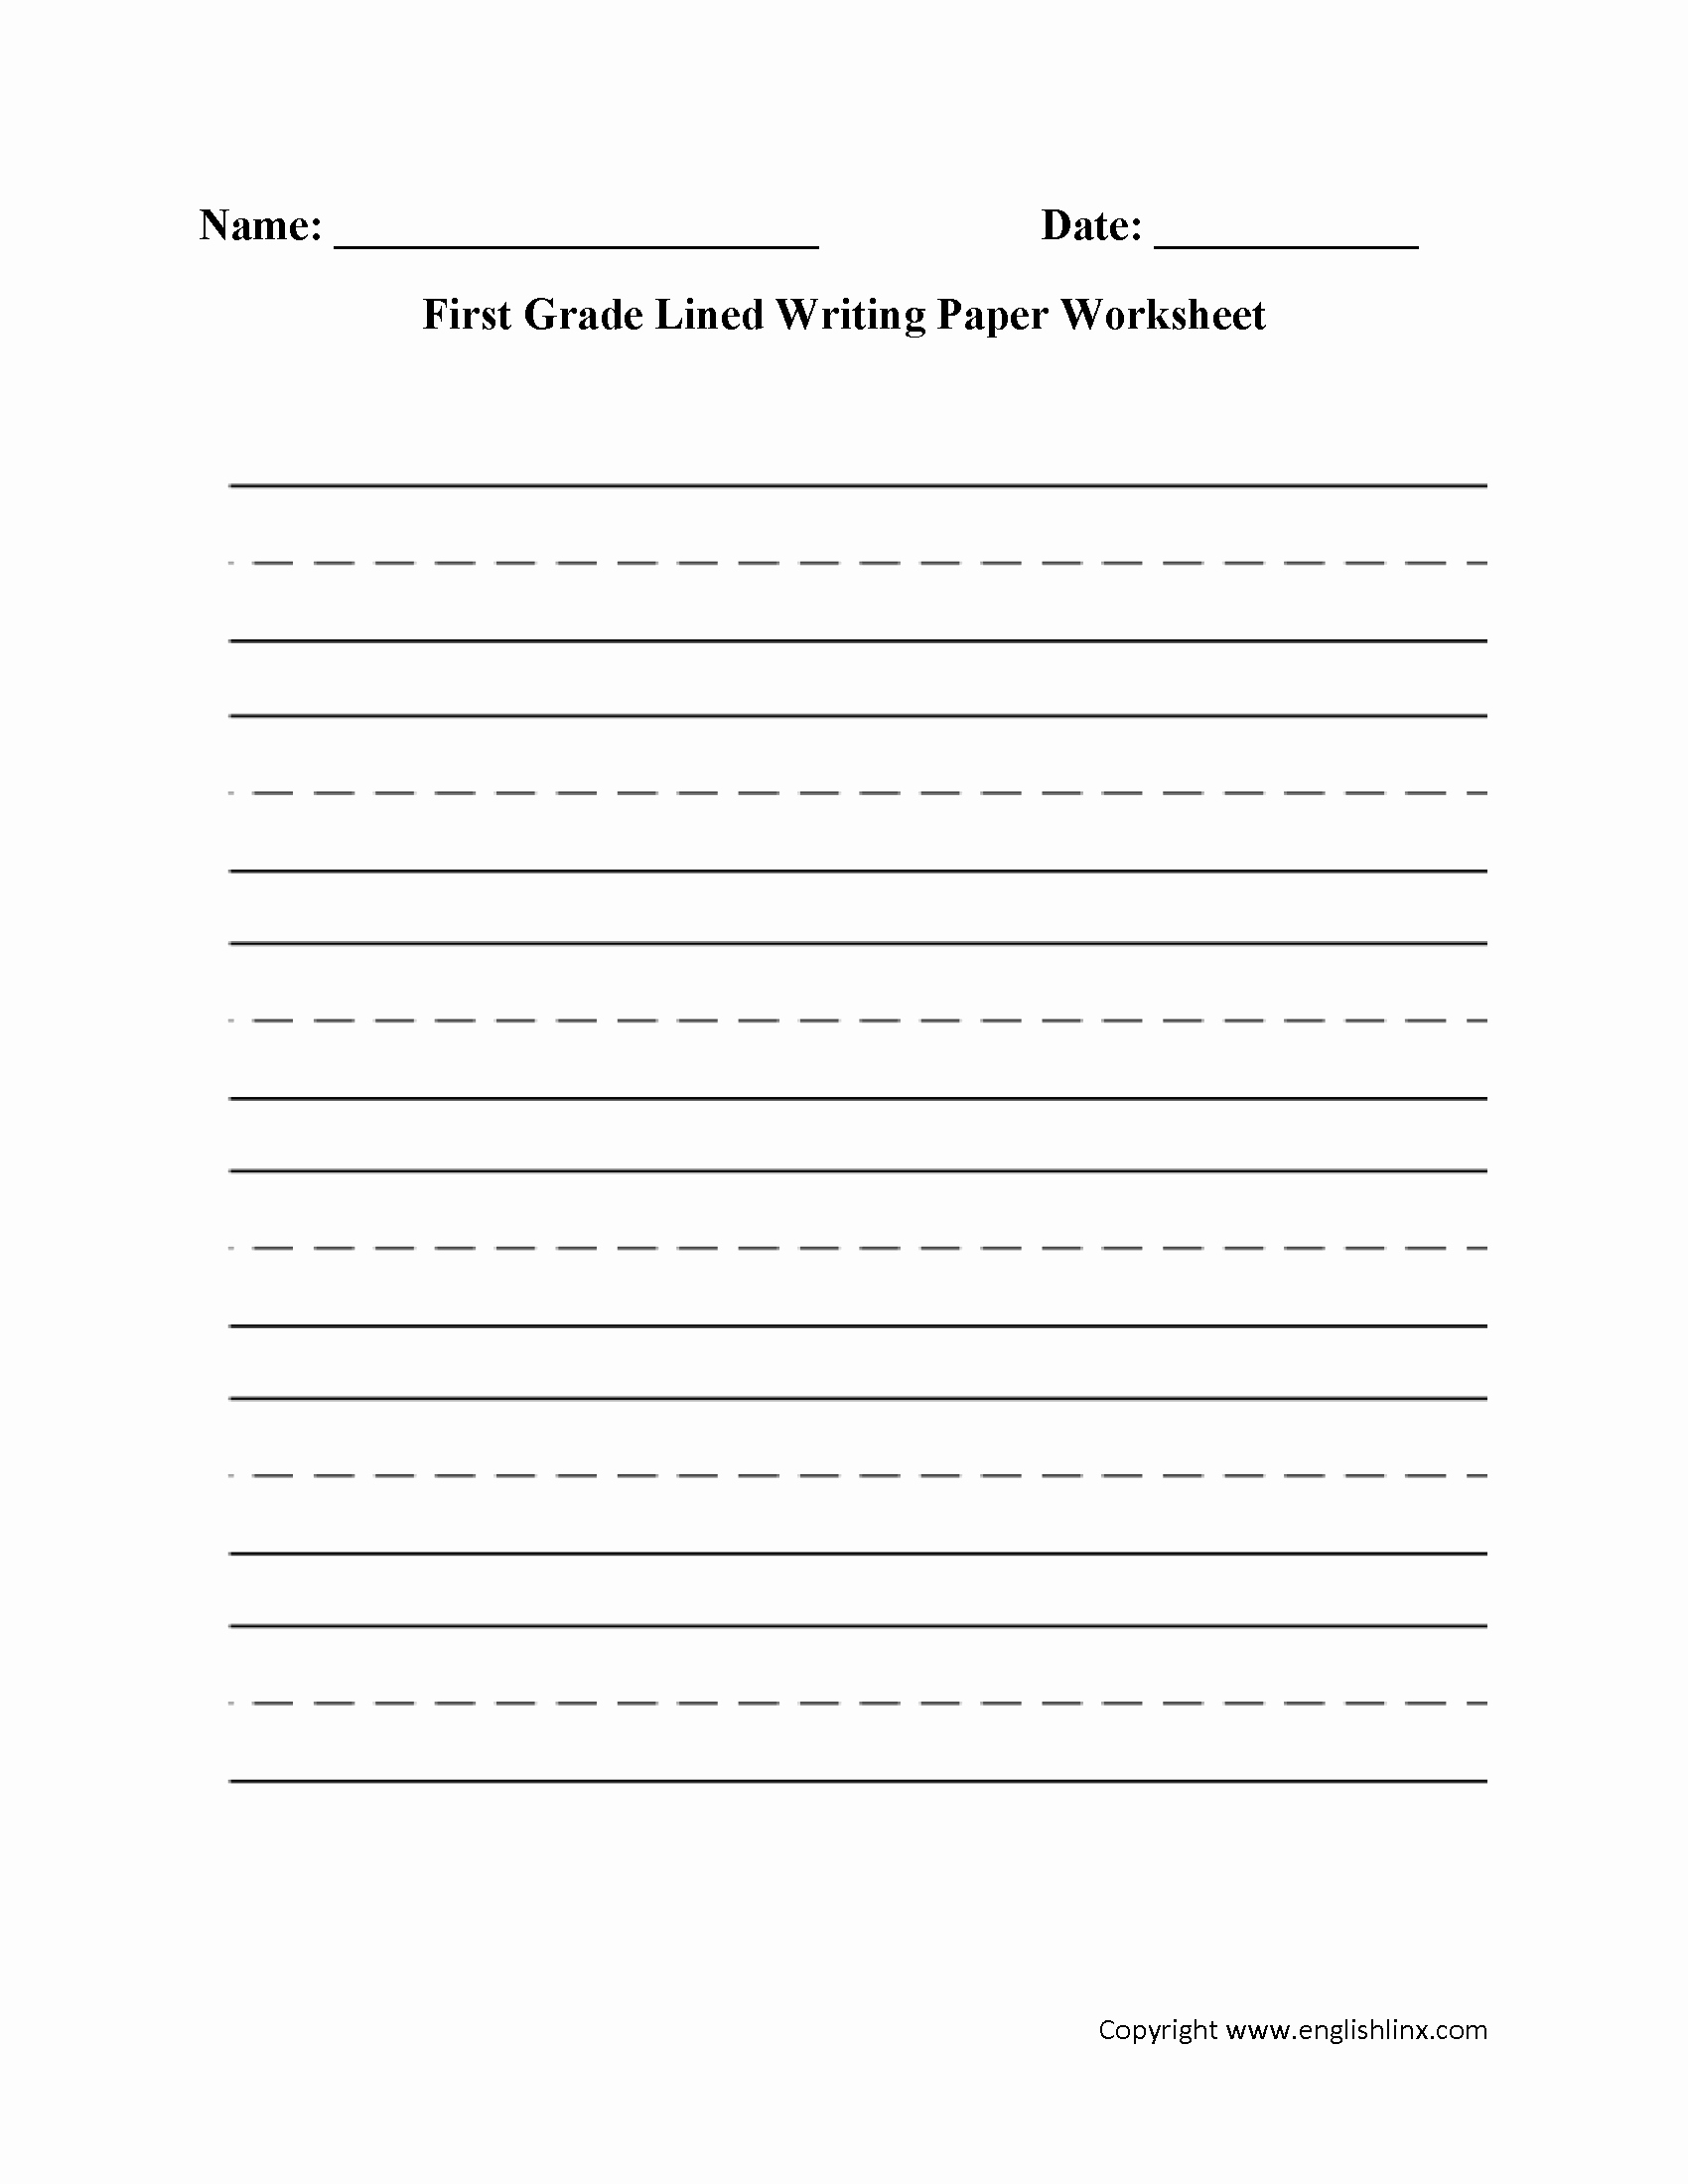 Worksheets for First Grade Writing Unique Printable First Grade Writing Paper that are Bewitching